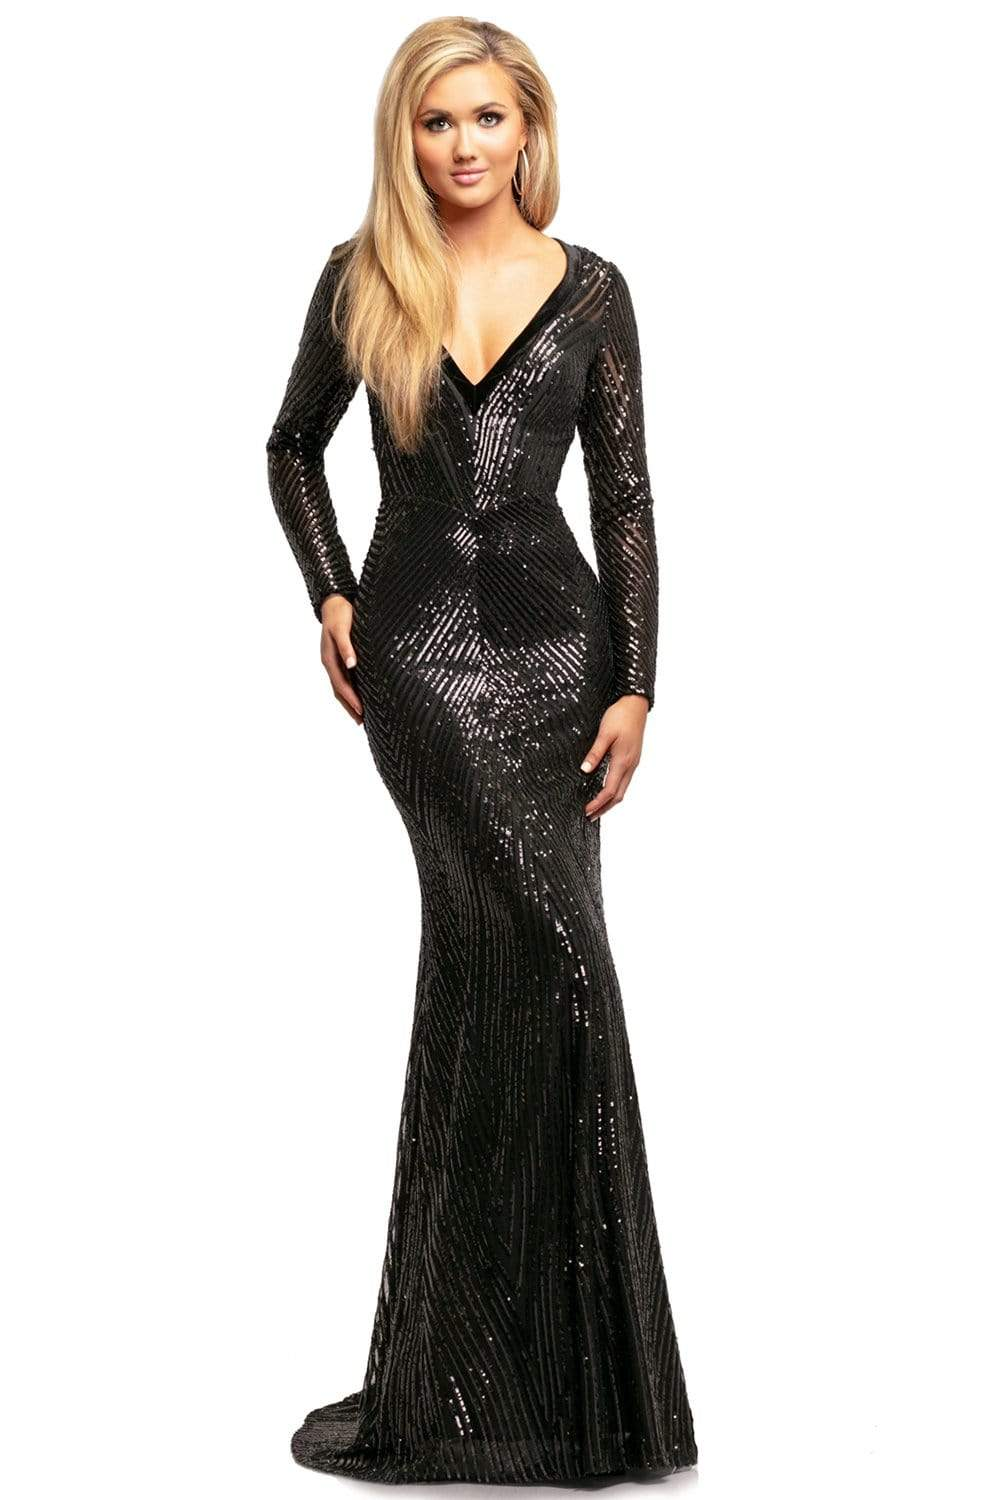 Johnathan Kayne - 2020 Wide V Neck Long Sleeve Sequin Evening Gown Evening Dresses 00 / Black